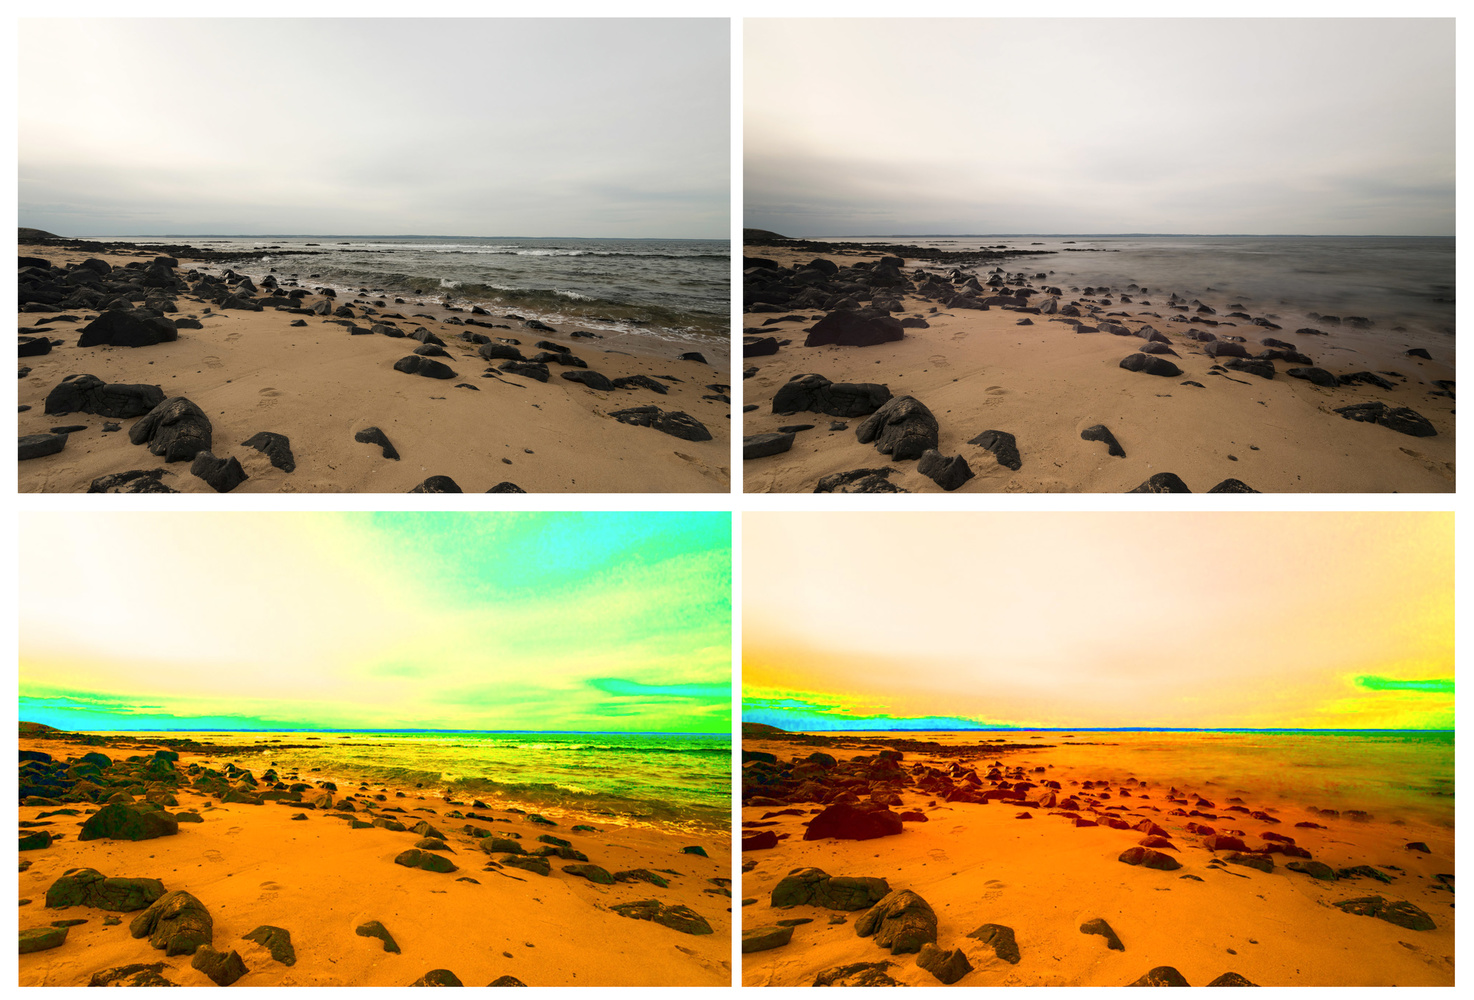 Fstoppers Reviews Nisi 100 X 100mm Nano Irnd 30 10 Stop Nd Filter System All In One Case Images Are Shot On A Cloudy Day Phillip Island Victoria The Photo Upper Left Corner Is Without And Right